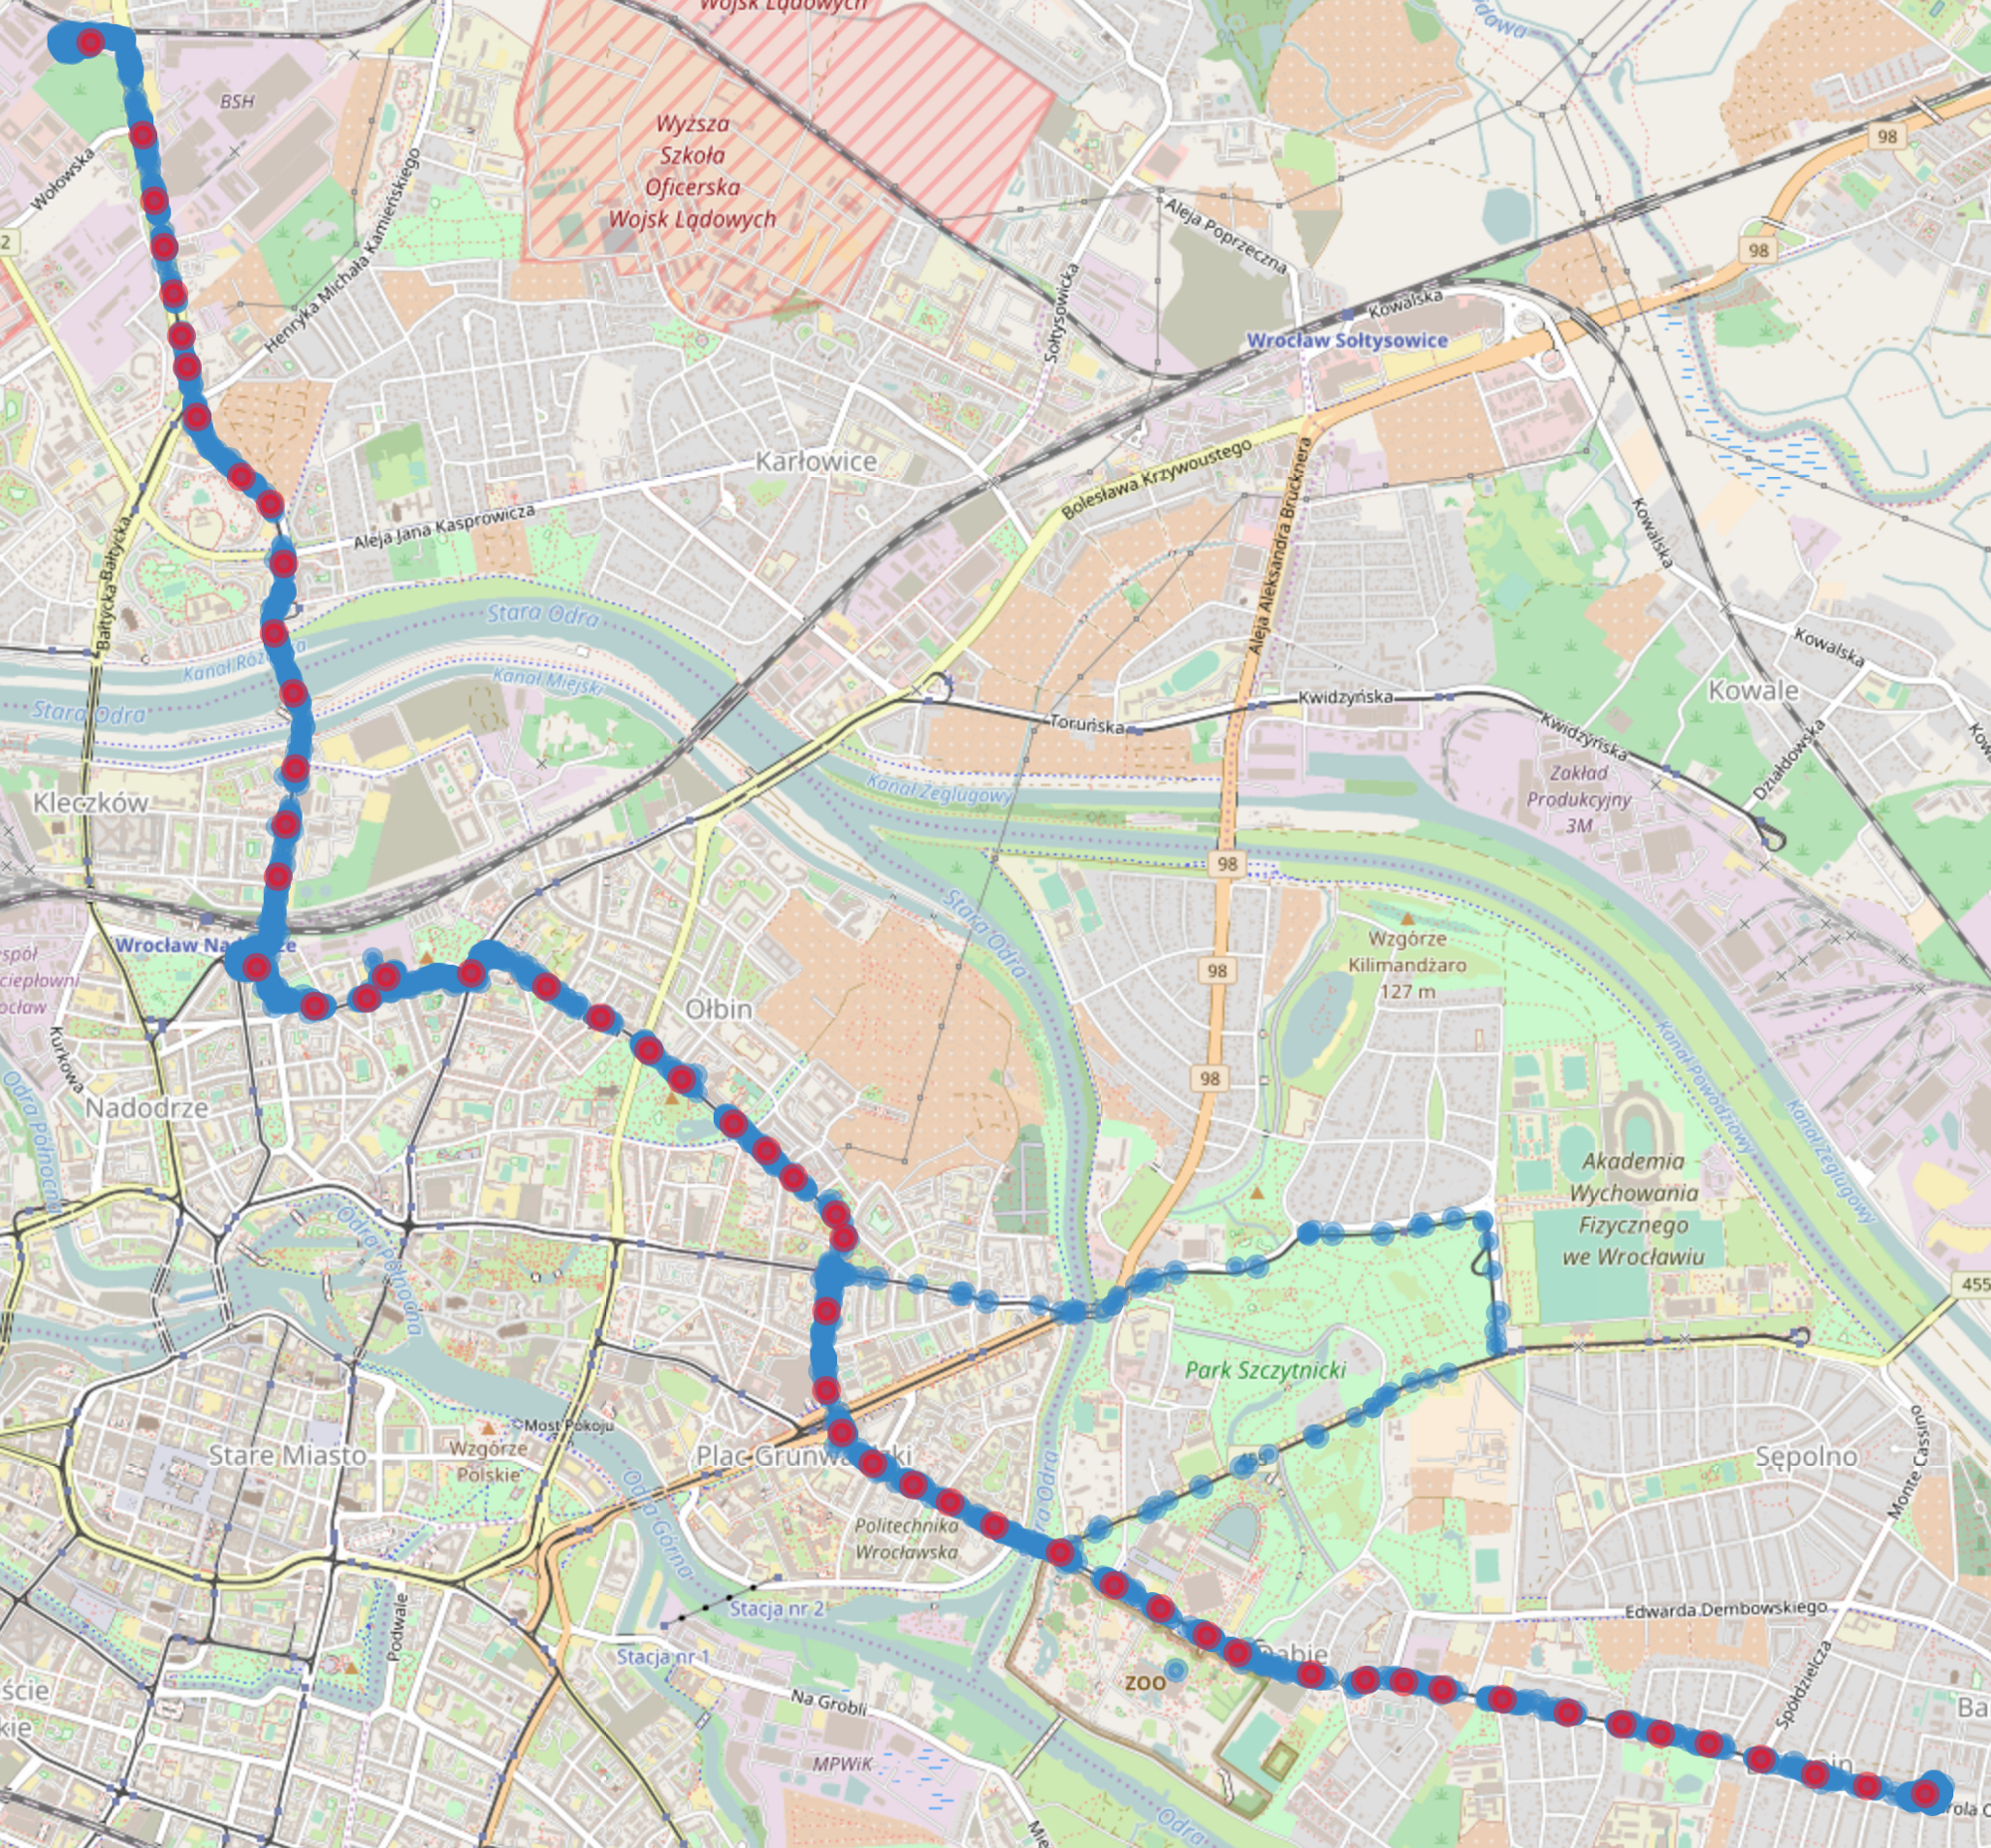 Approximating public transport route from cloud of GPS locations